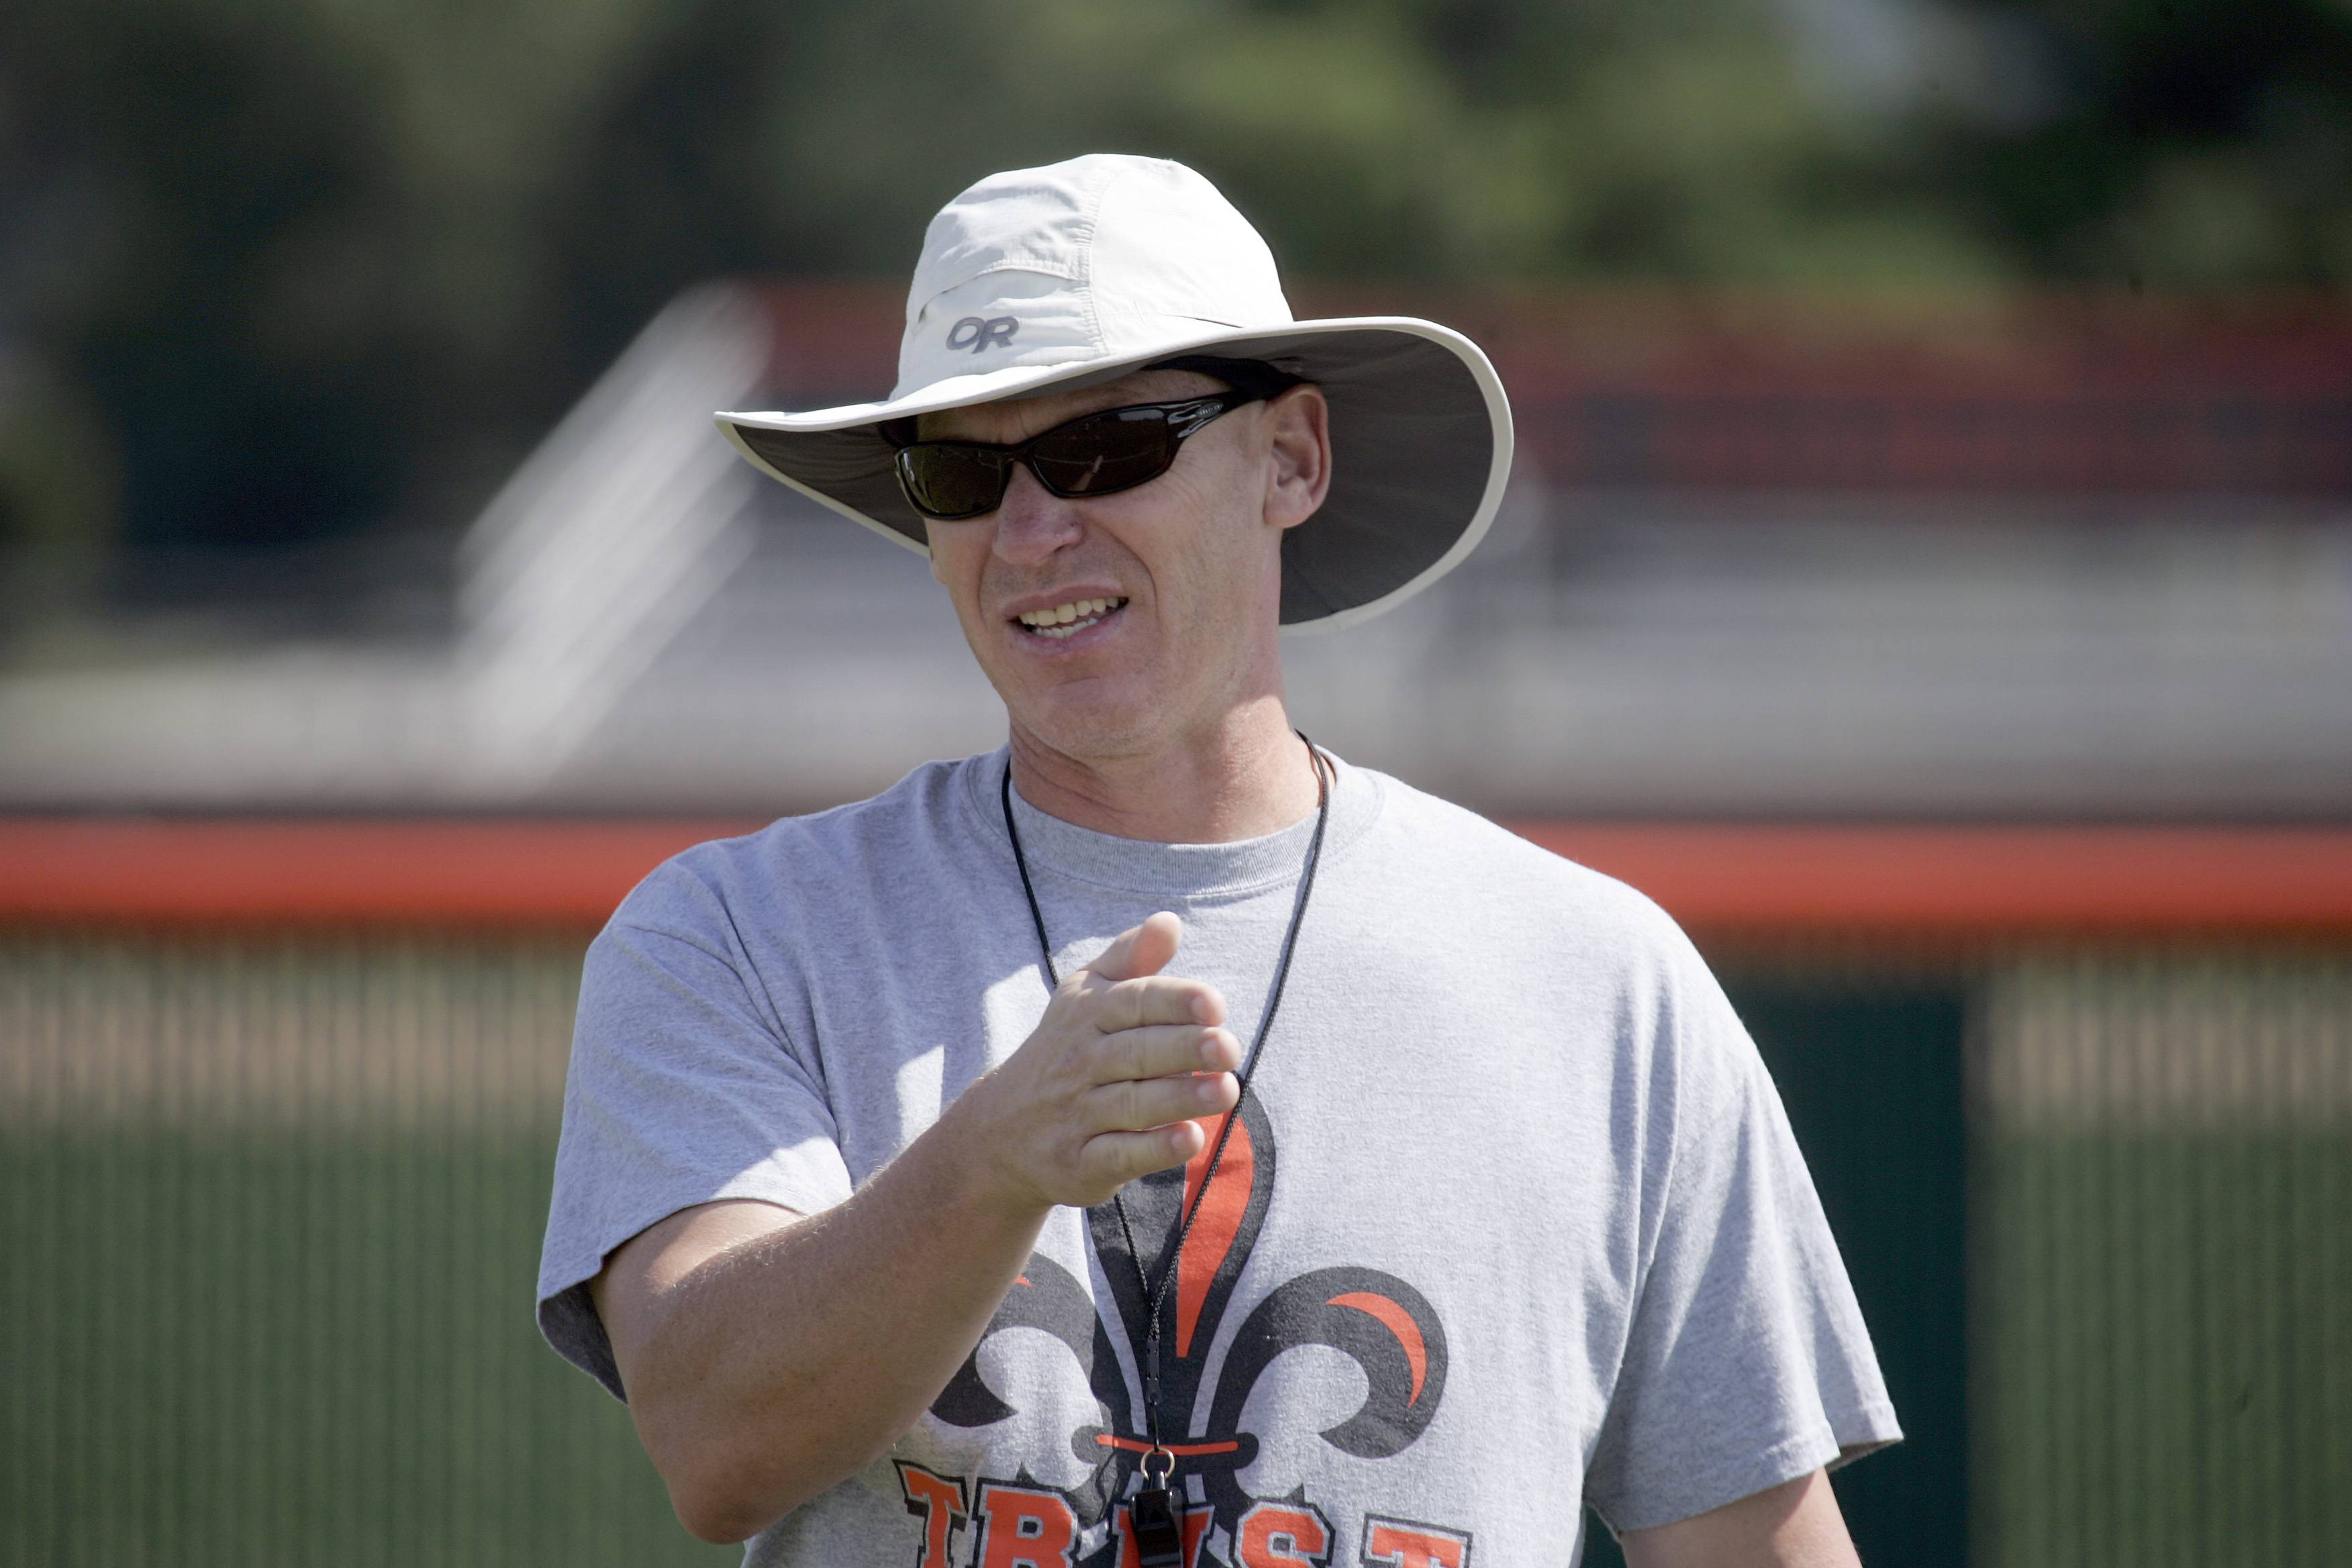 Mike Fields announced Monday he is stepping down as St. Charles East football coach after five years.